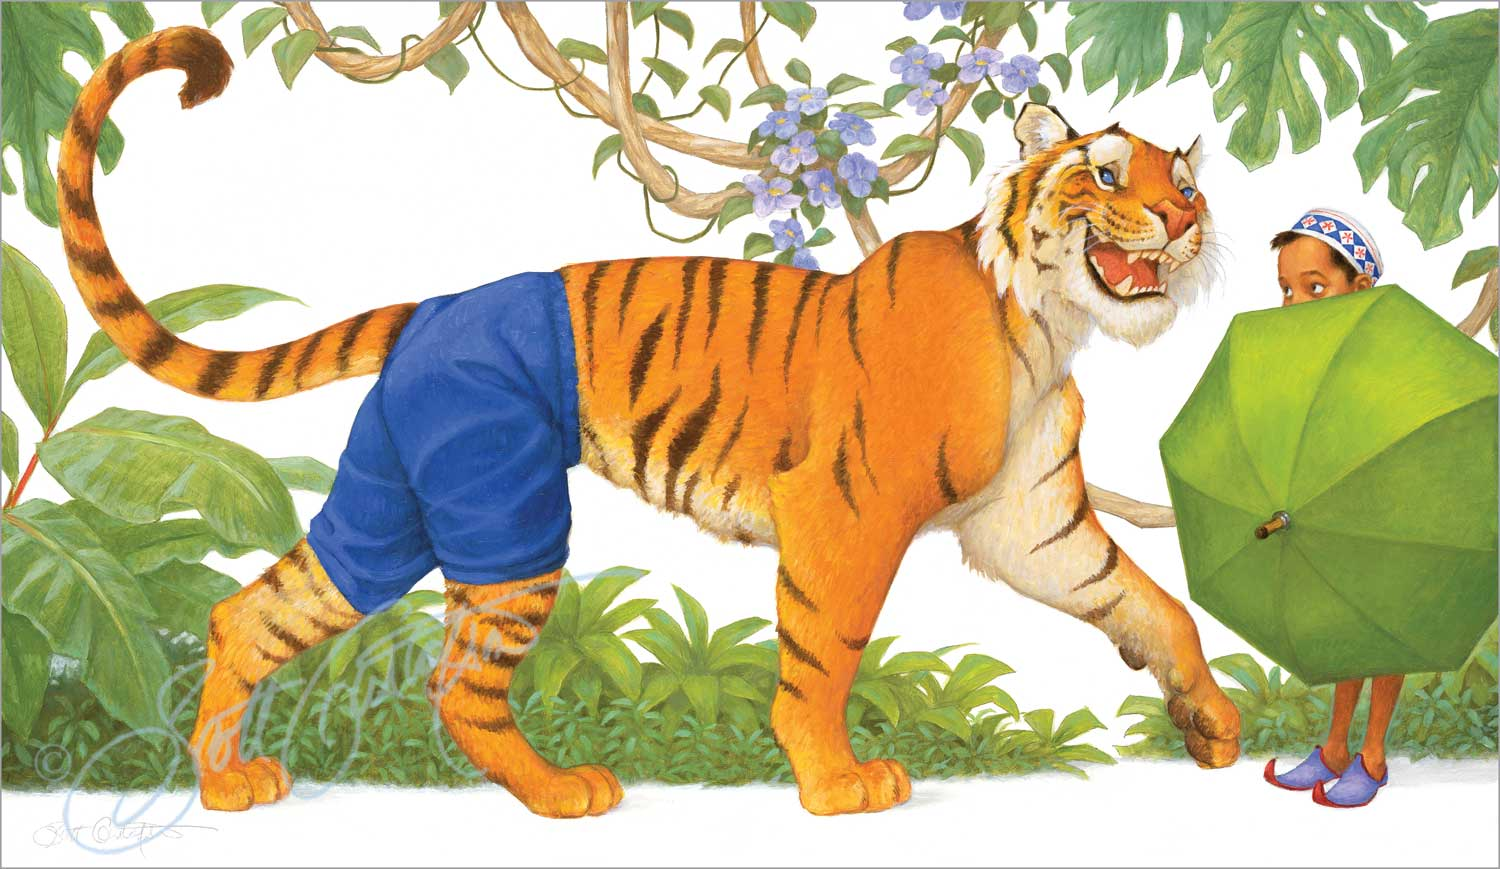 Sambha and the Tiger with the Blue Trousers